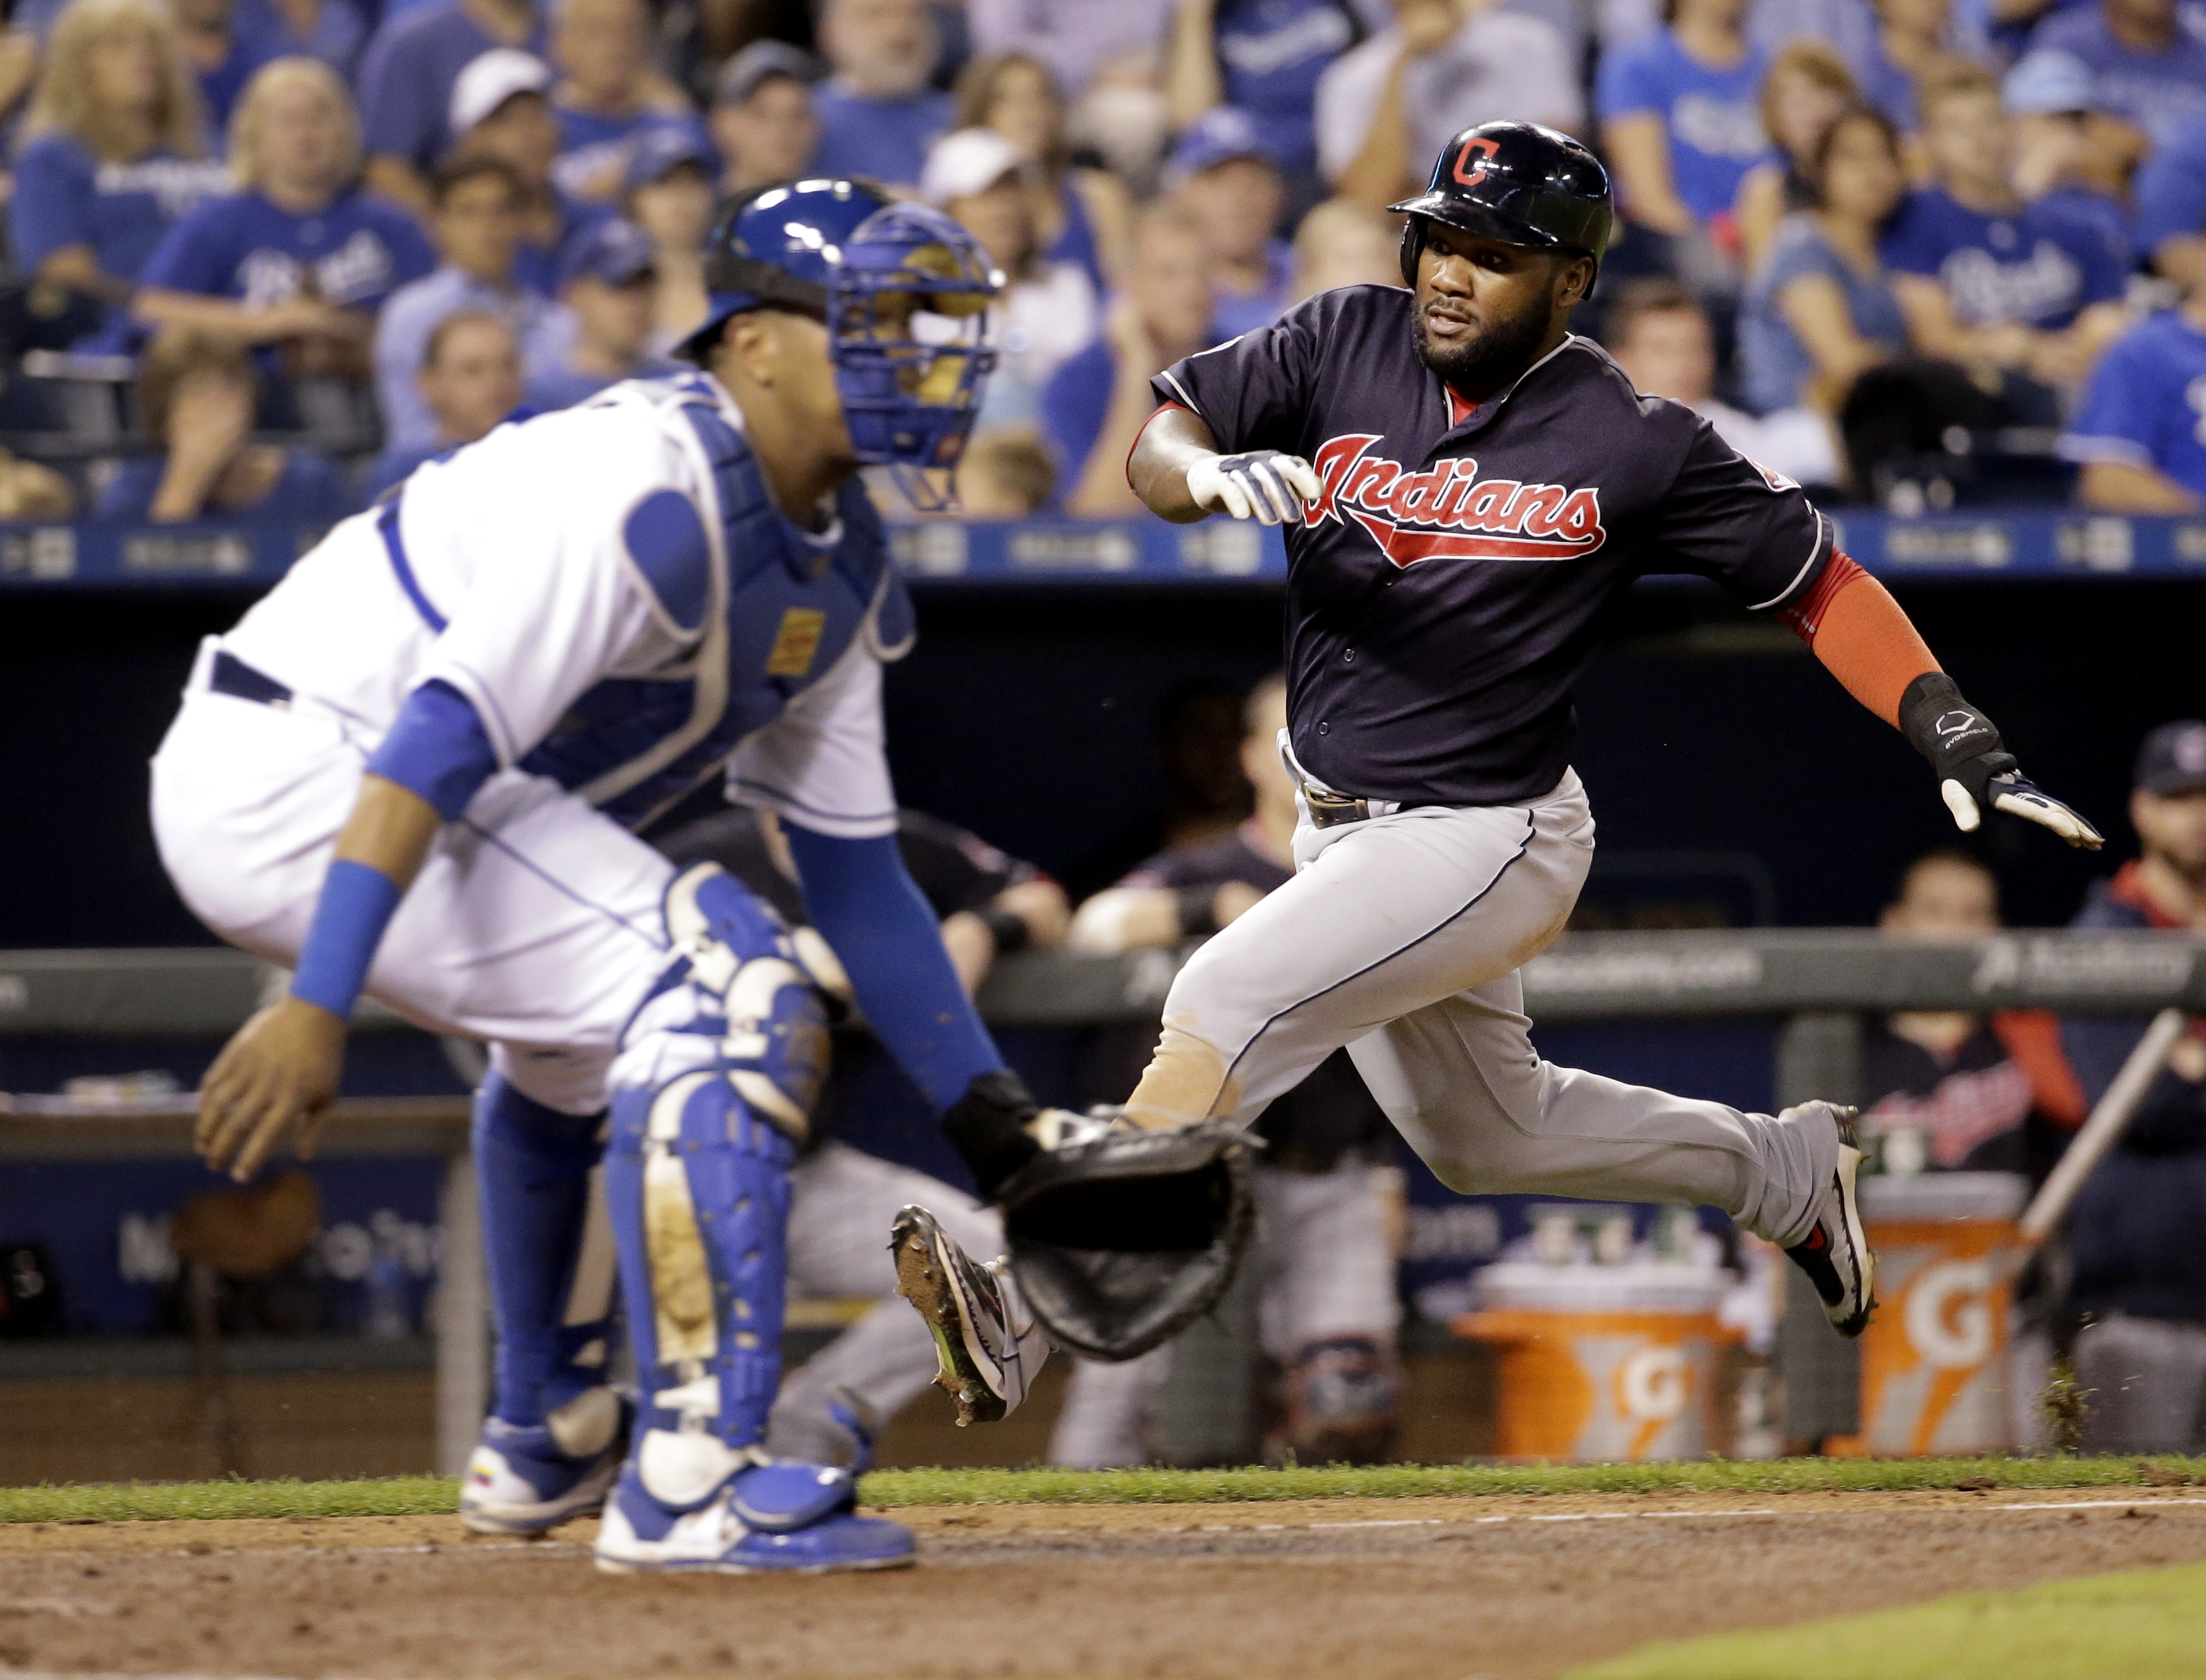 Cleveland Indians' Abraham Almonte runs past Kansas City Royals catcher Salvador Perez to score on a single by Jason Kipnis during the sixth inning of a baseball game Saturday, Sept. 26, 2015, in Kansas City, Mo. (AP Photo/Charlie Riedel)